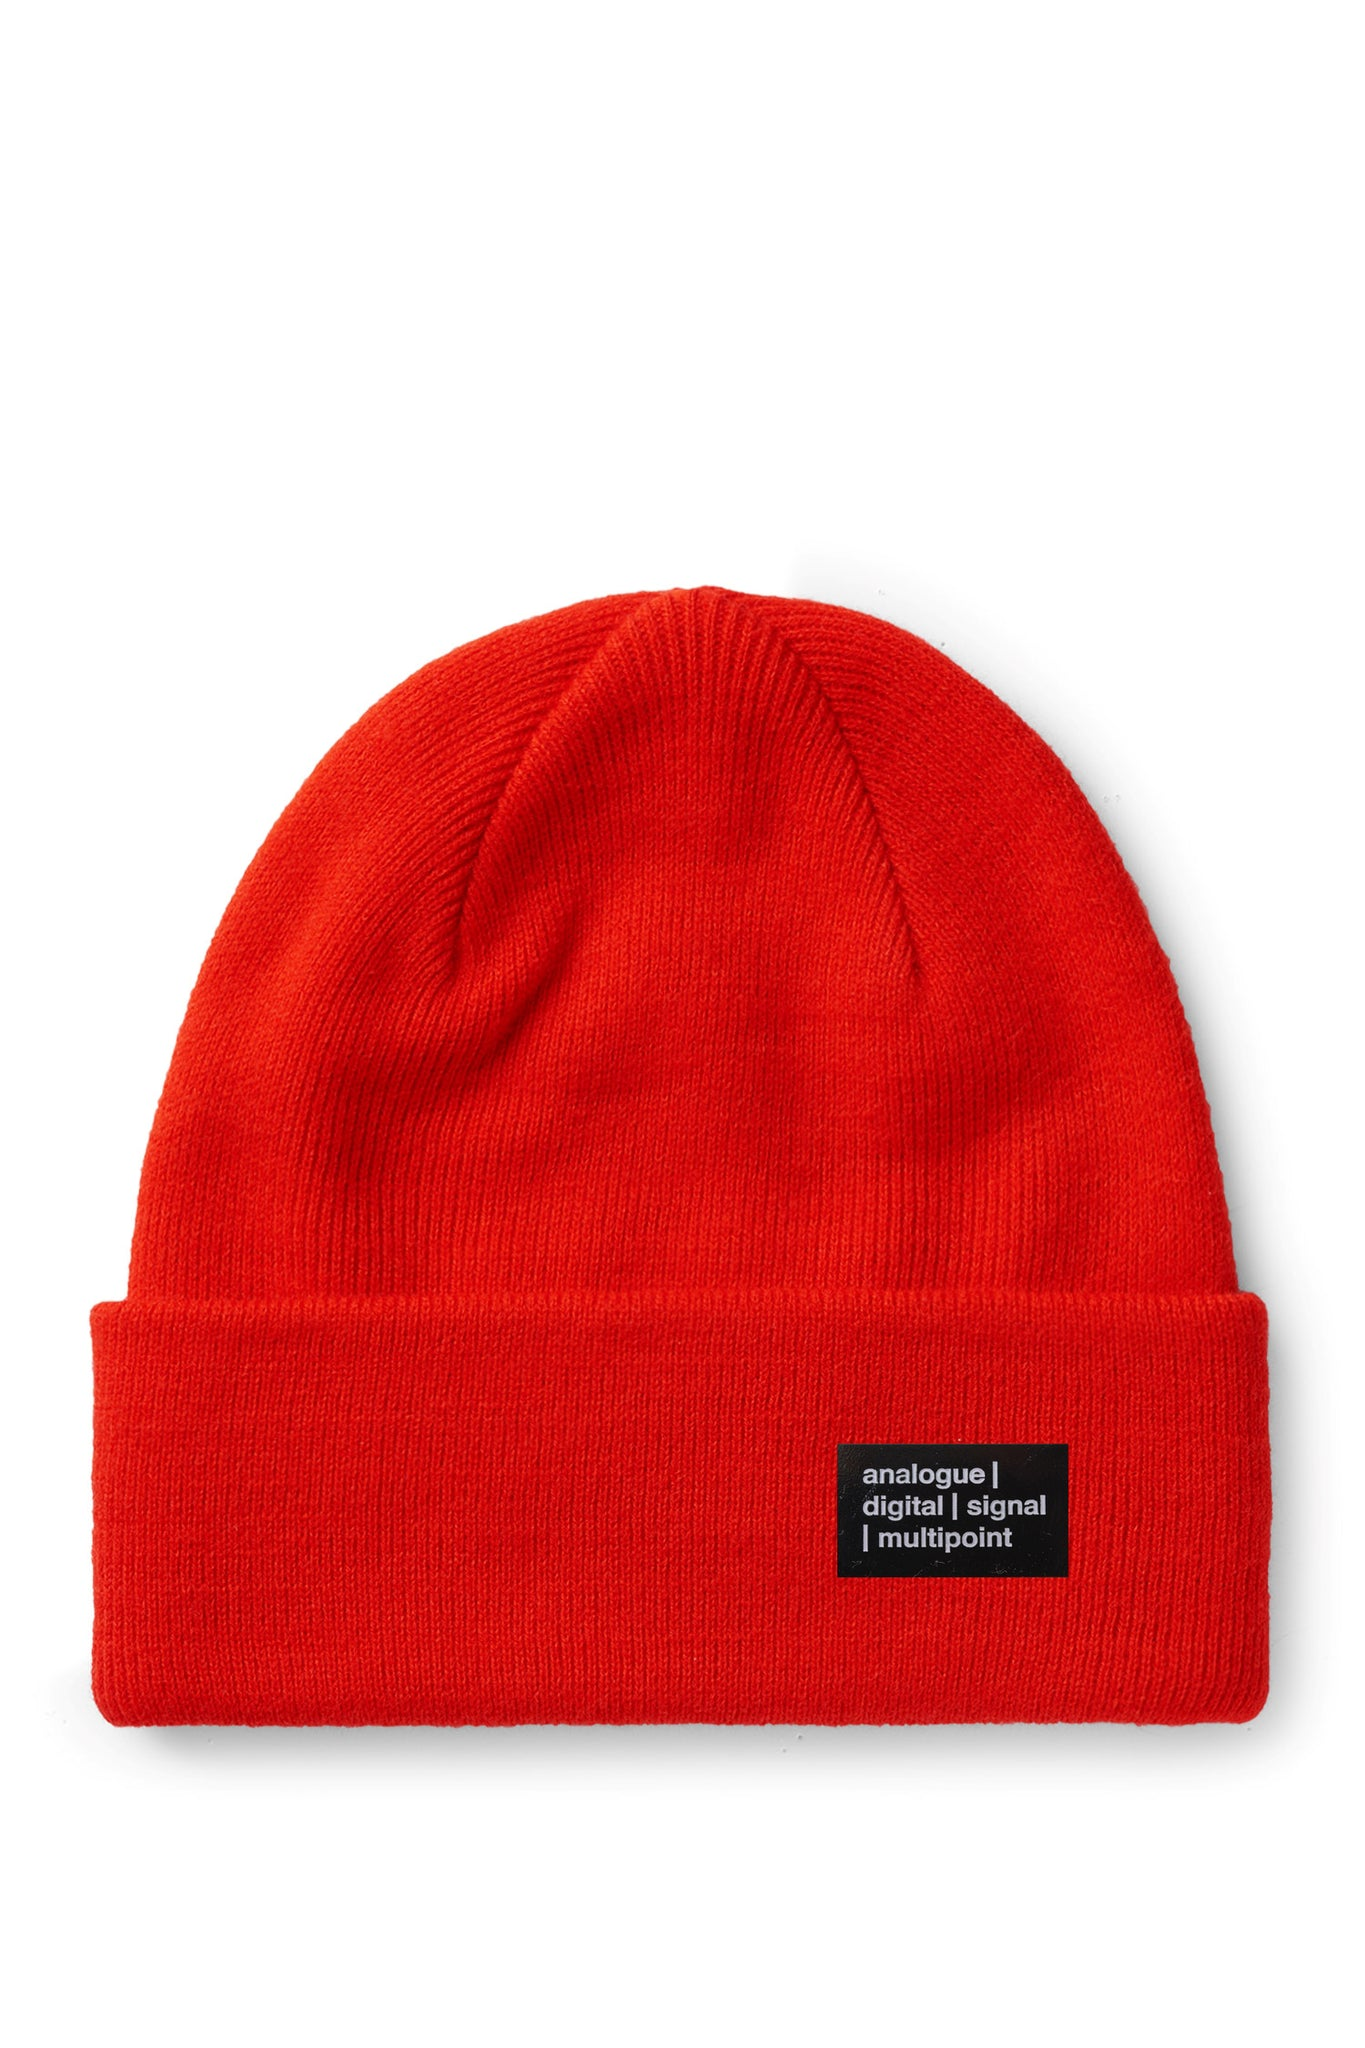 TDT Multipoint Beanie - Red - low stock